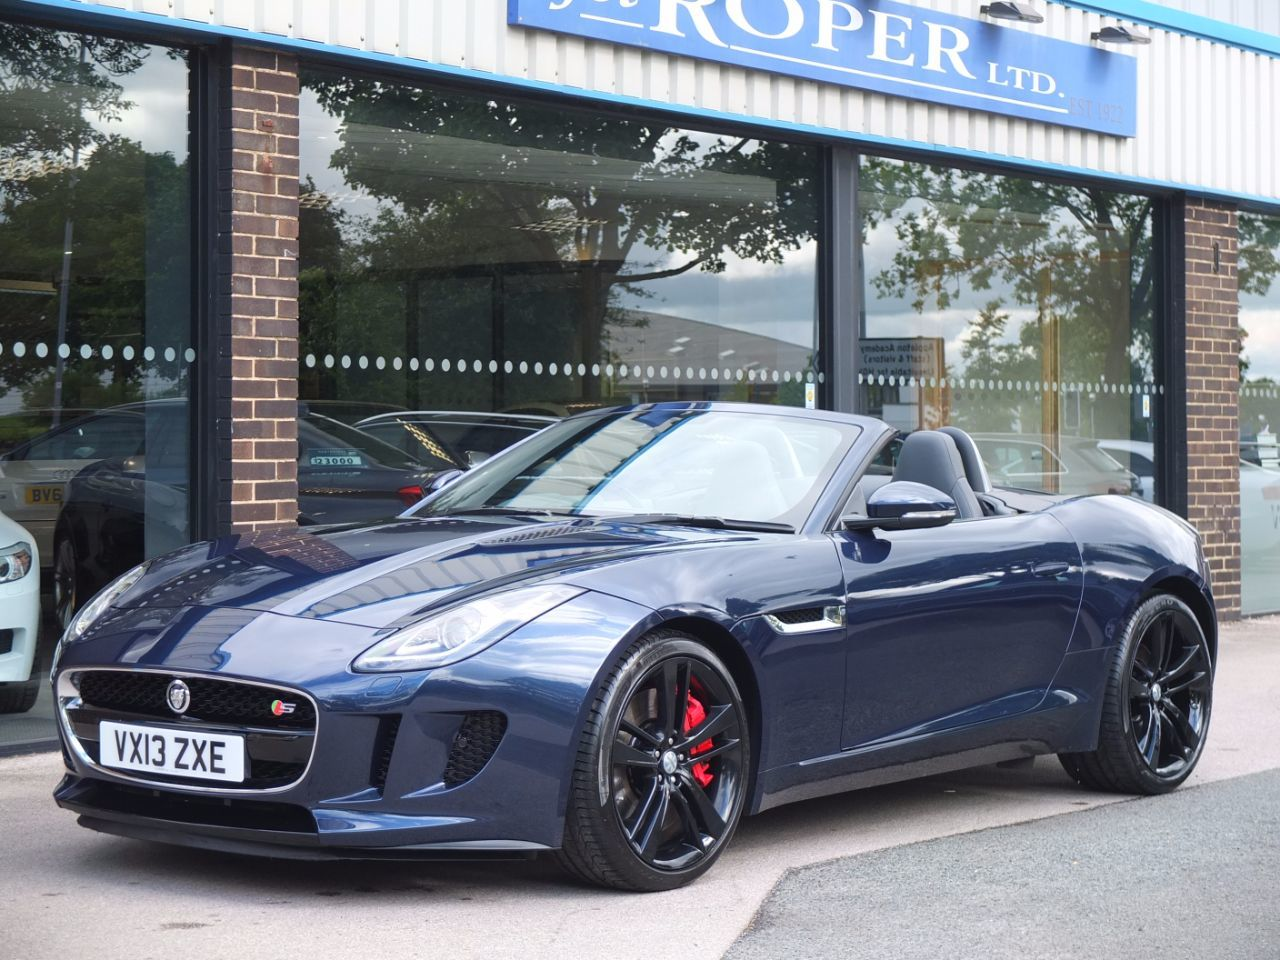 Jaguar F-type Convertible 3.0 Supercharged V6 S Quickshift Auto 380ps +++Spec Convertible Petrol Indigo Blue PearlescentJaguar F-type Convertible 3.0 Supercharged V6 S Quickshift Auto 380ps +++Spec Convertible Petrol Indigo Blue Pearlescent at fa Roper Ltd Bradford